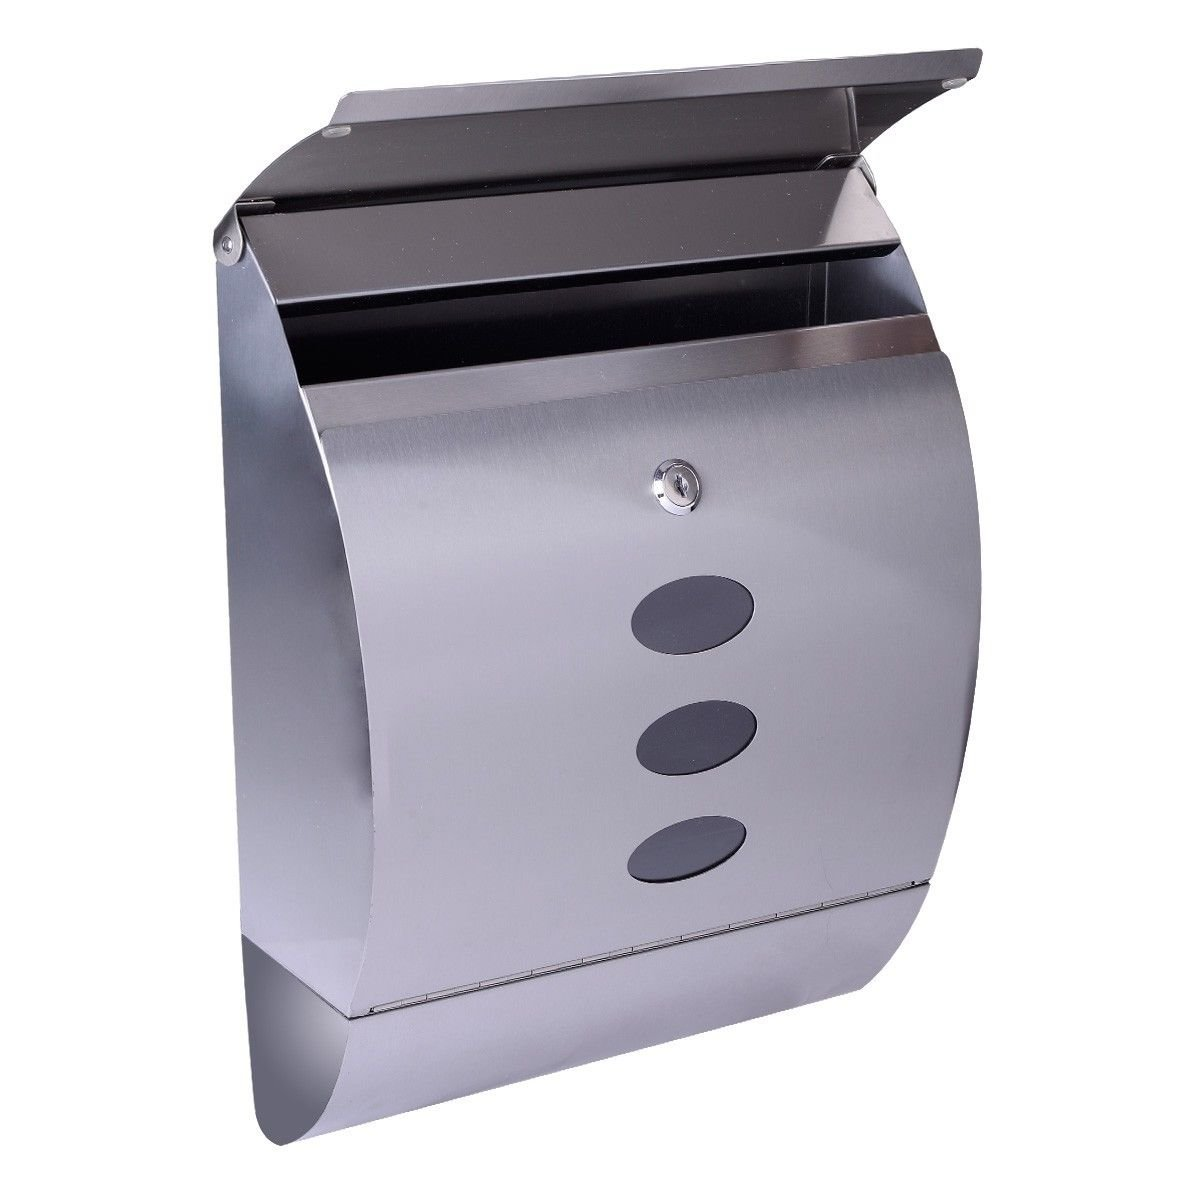 Giantex Stainless Steel Wall Mount Mail Box w/ Retrieval Door & 2 Keys & Newspaper Roll